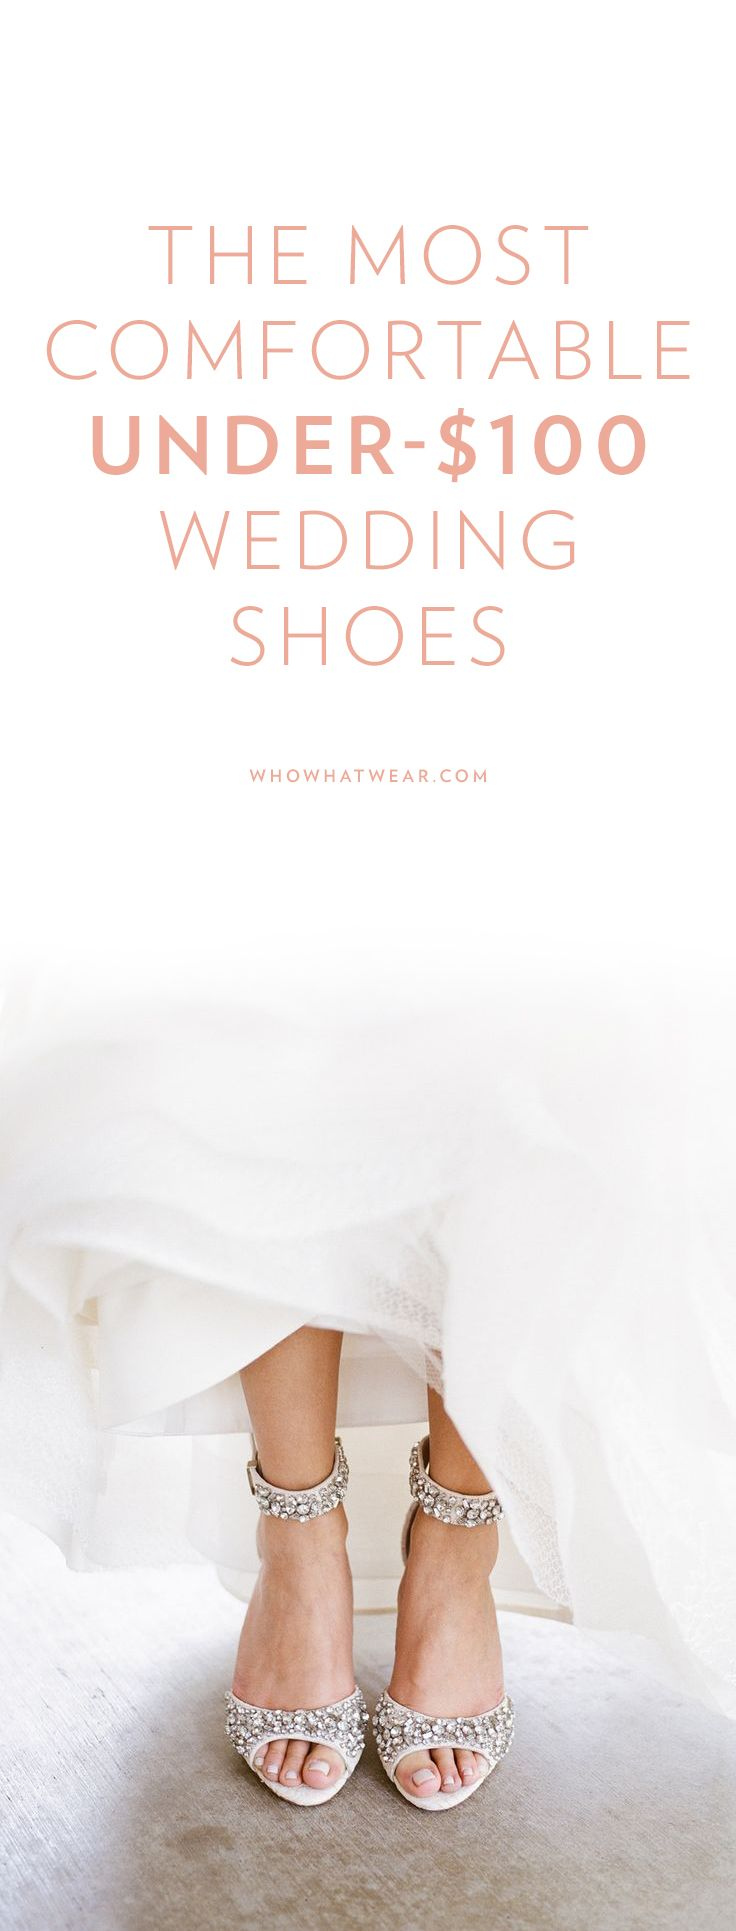 Shop: Comfortable Wedding Shoes